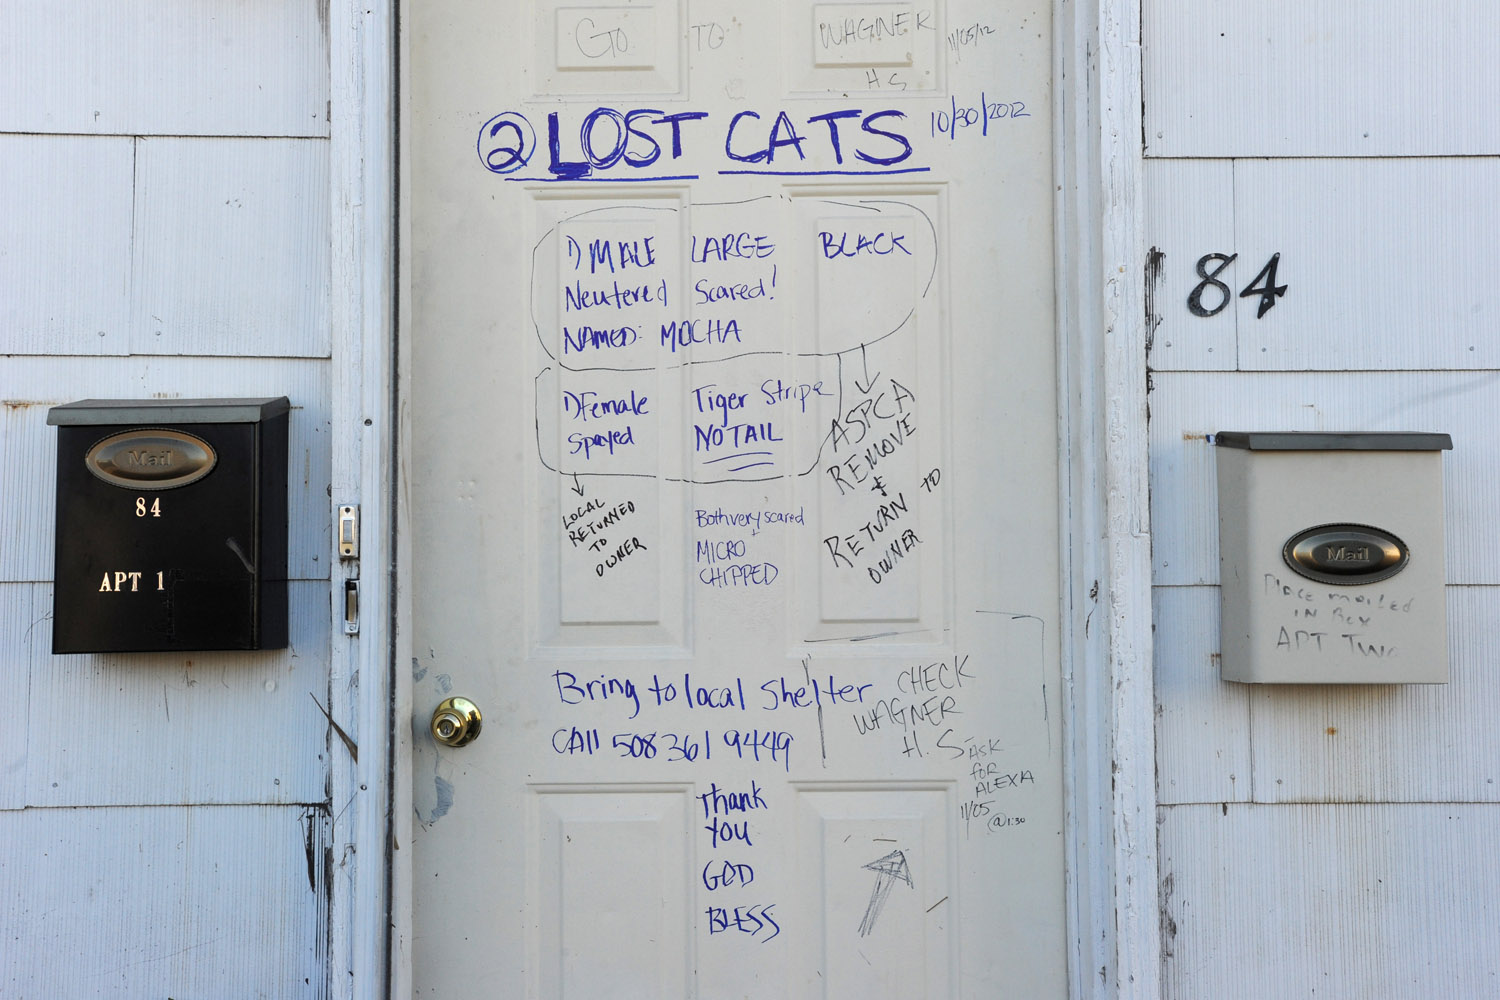 Notice of lost cats, updated when they were found, New Dorp Avenue, Staten Island, N.Y., 2012